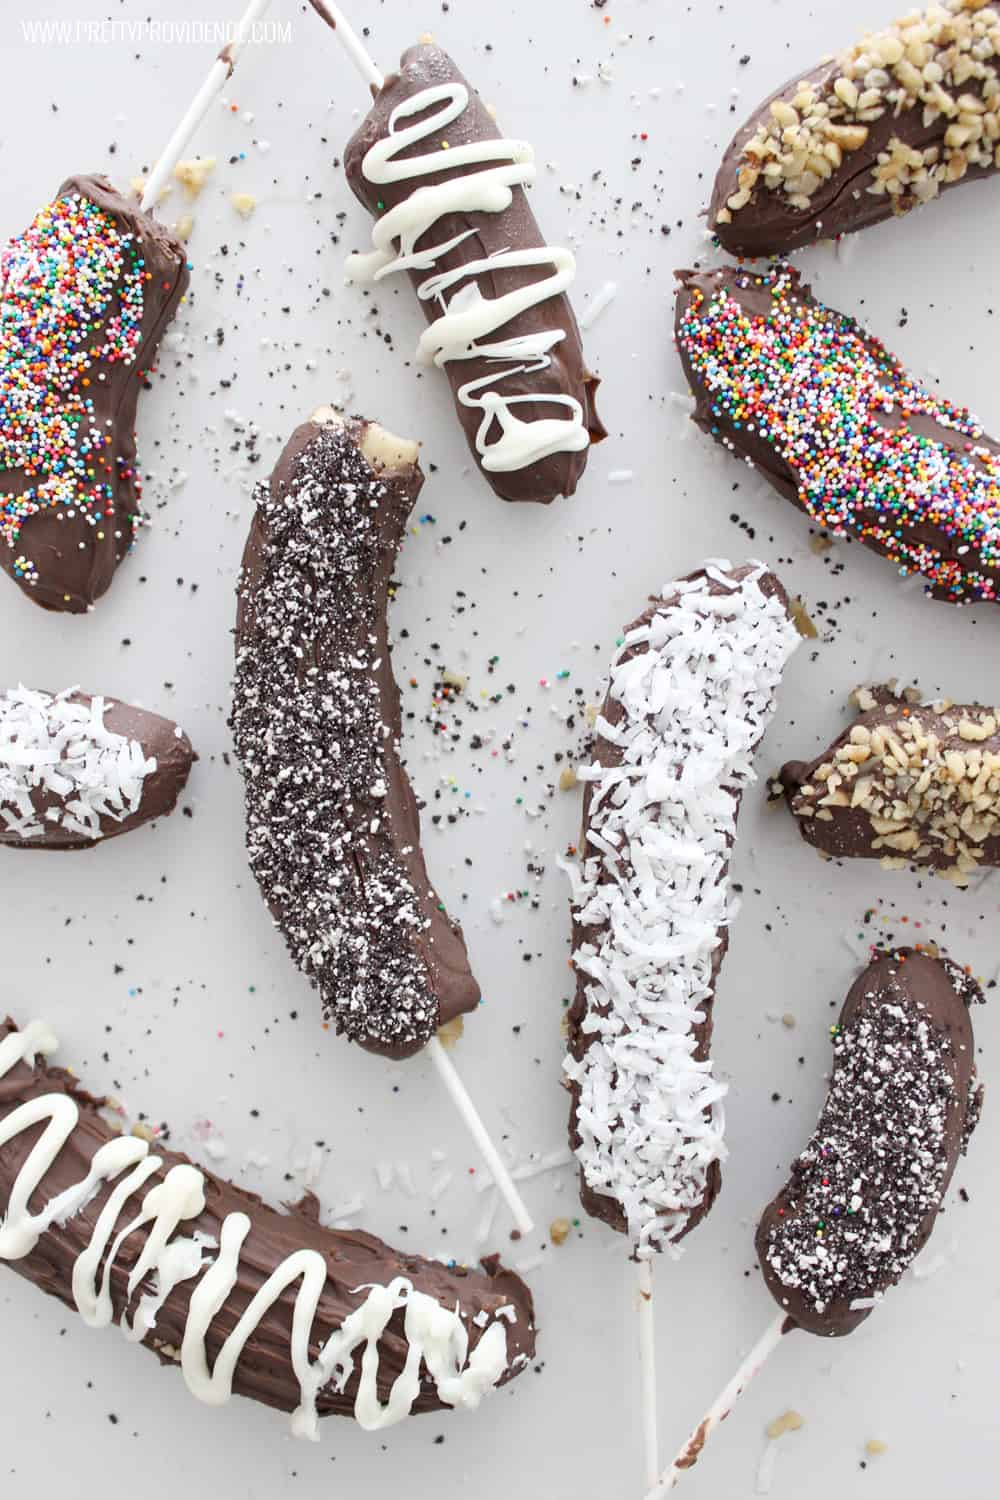 Not only are these frozen chocolate covered bananas easy to make, they are freaking delicious! Such a fun summer treat, and lots better for you than a regular ice cream bar!